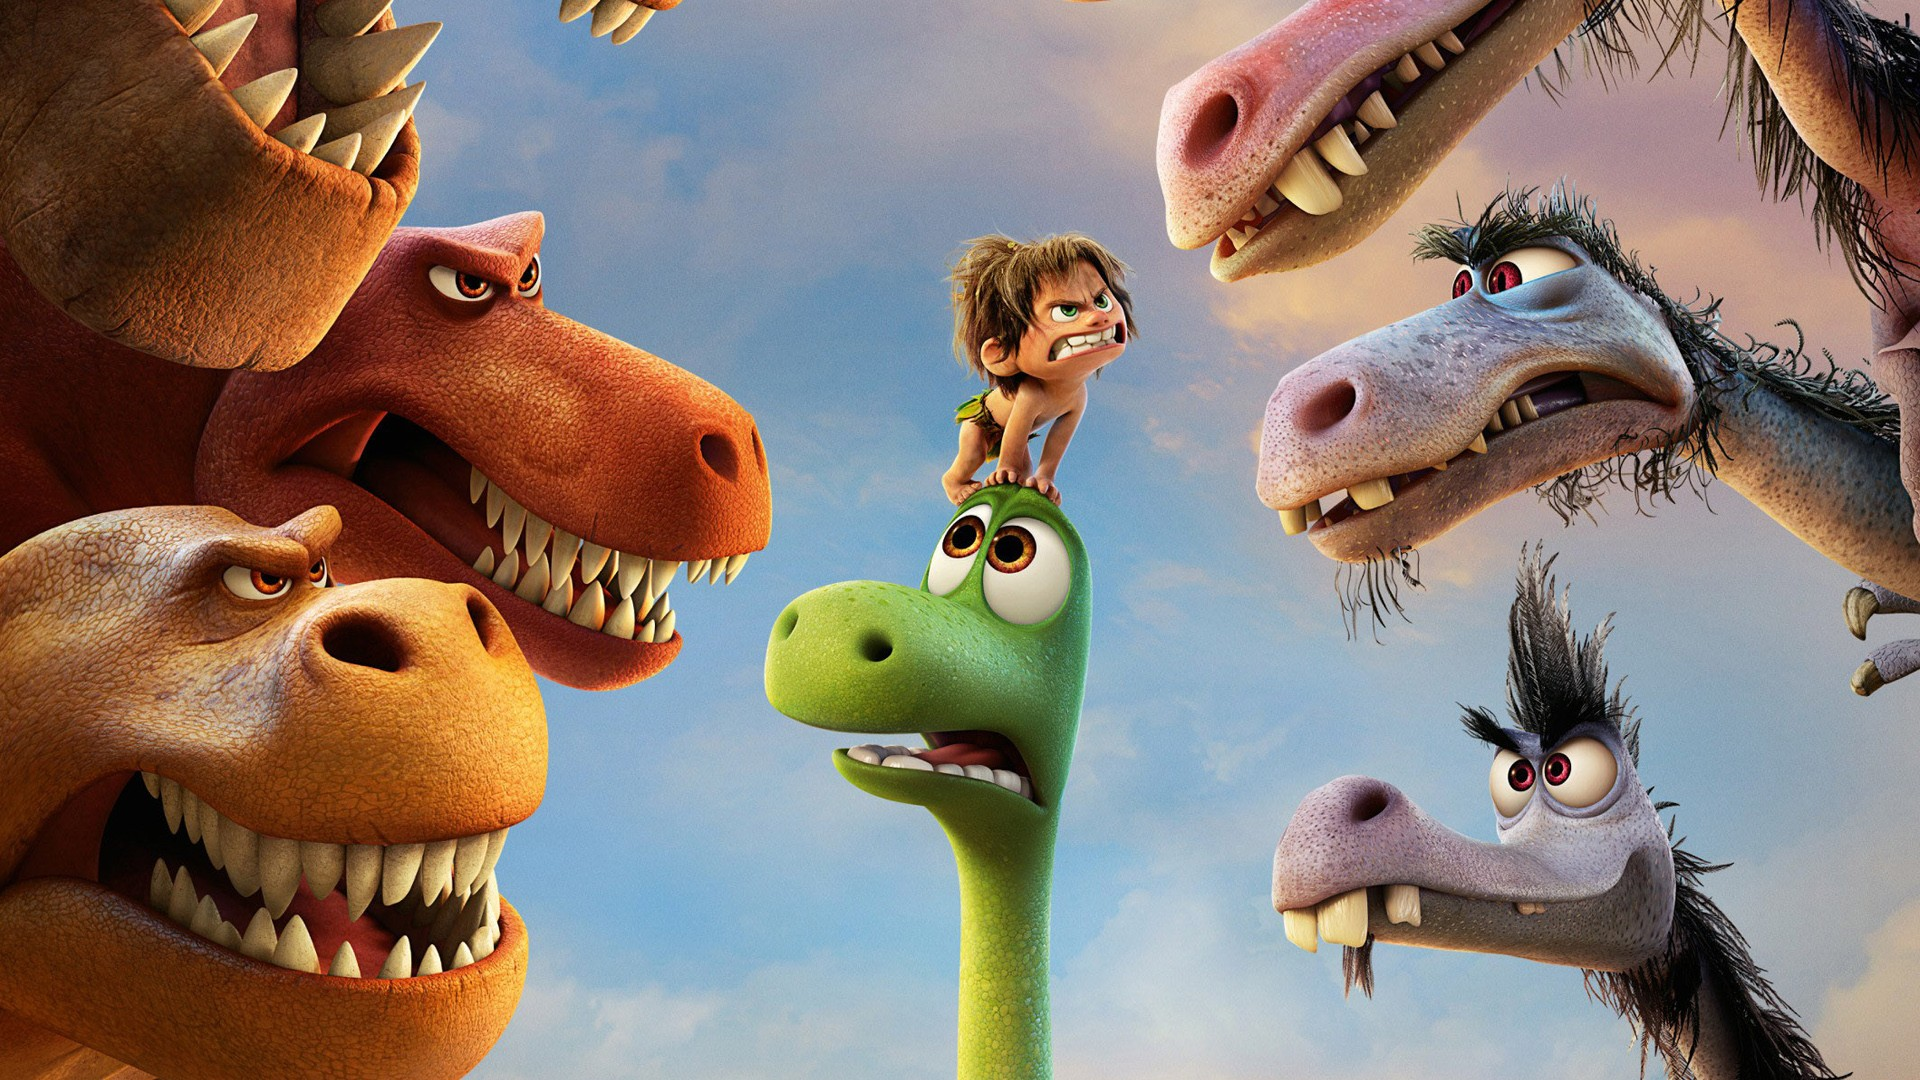 Cute Anime Iphone Wallpaper The Good Dinosaur 2015 Movie Wallpapers Hd Wallpapers